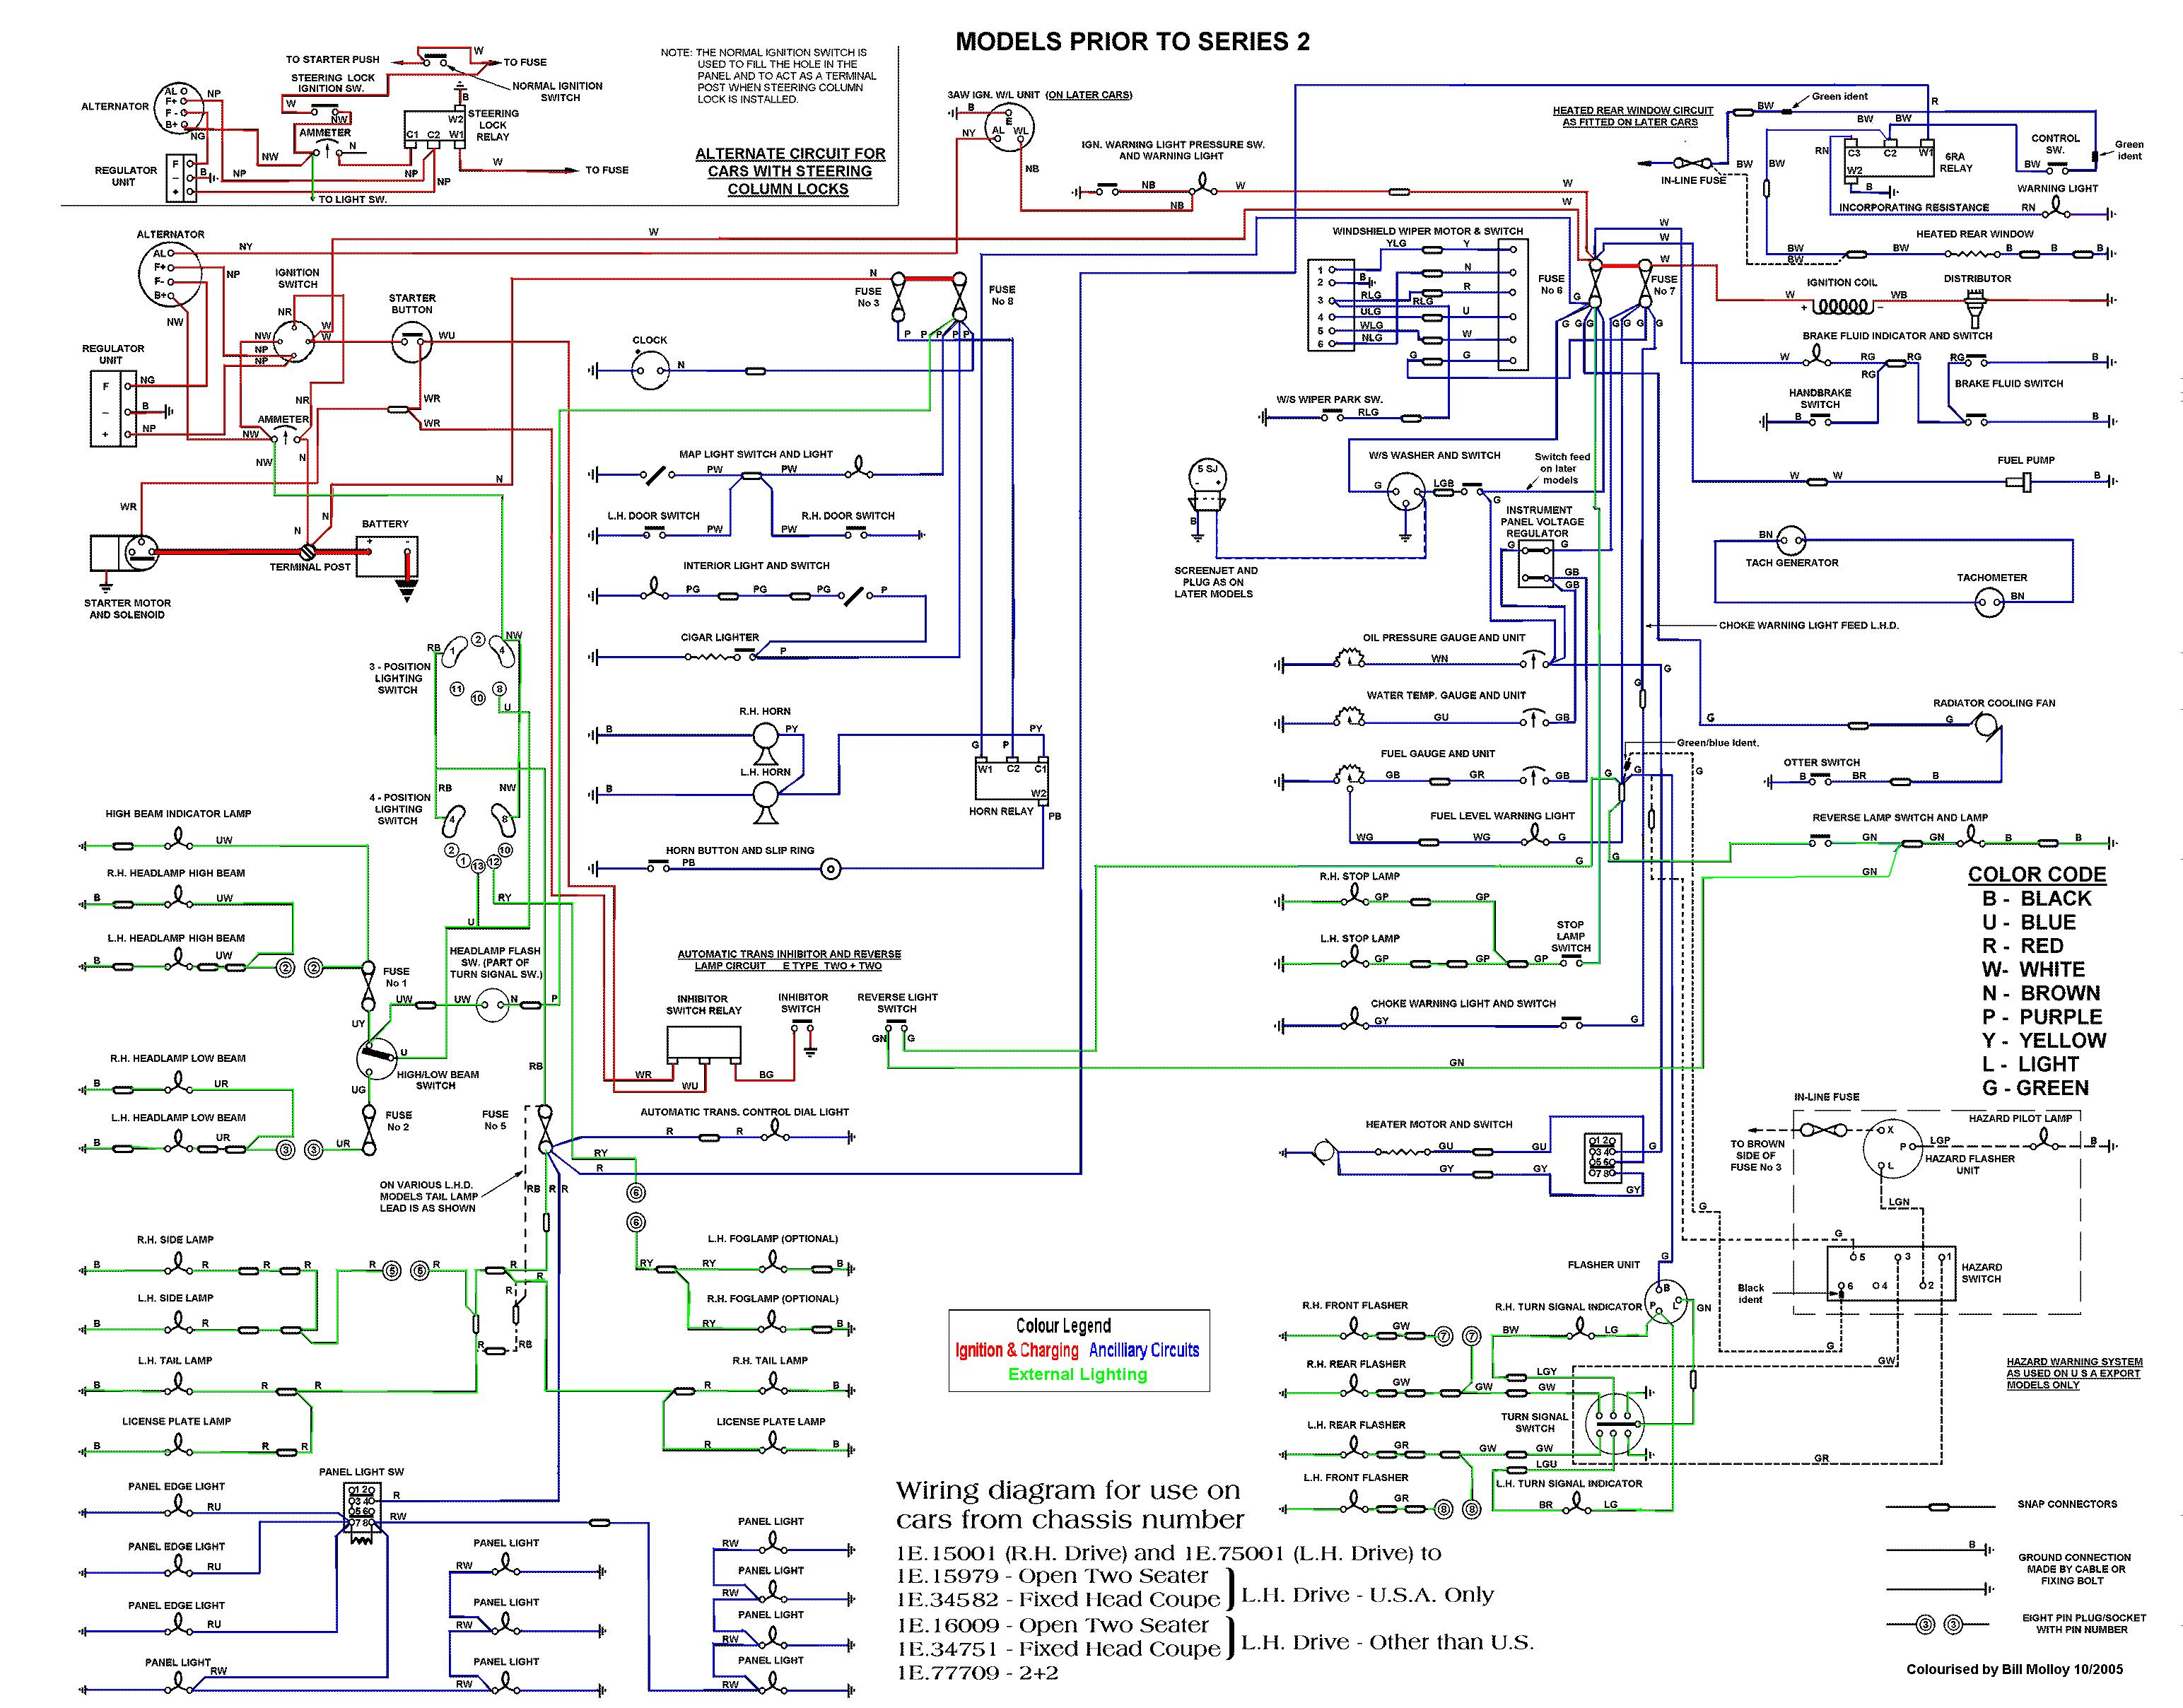 2003 jaguar s type wiring diagram zAKOGhQ jaguar xj6 wiring diagram efcaviation com jaguar x type wiring diagram pdf at n-0.co